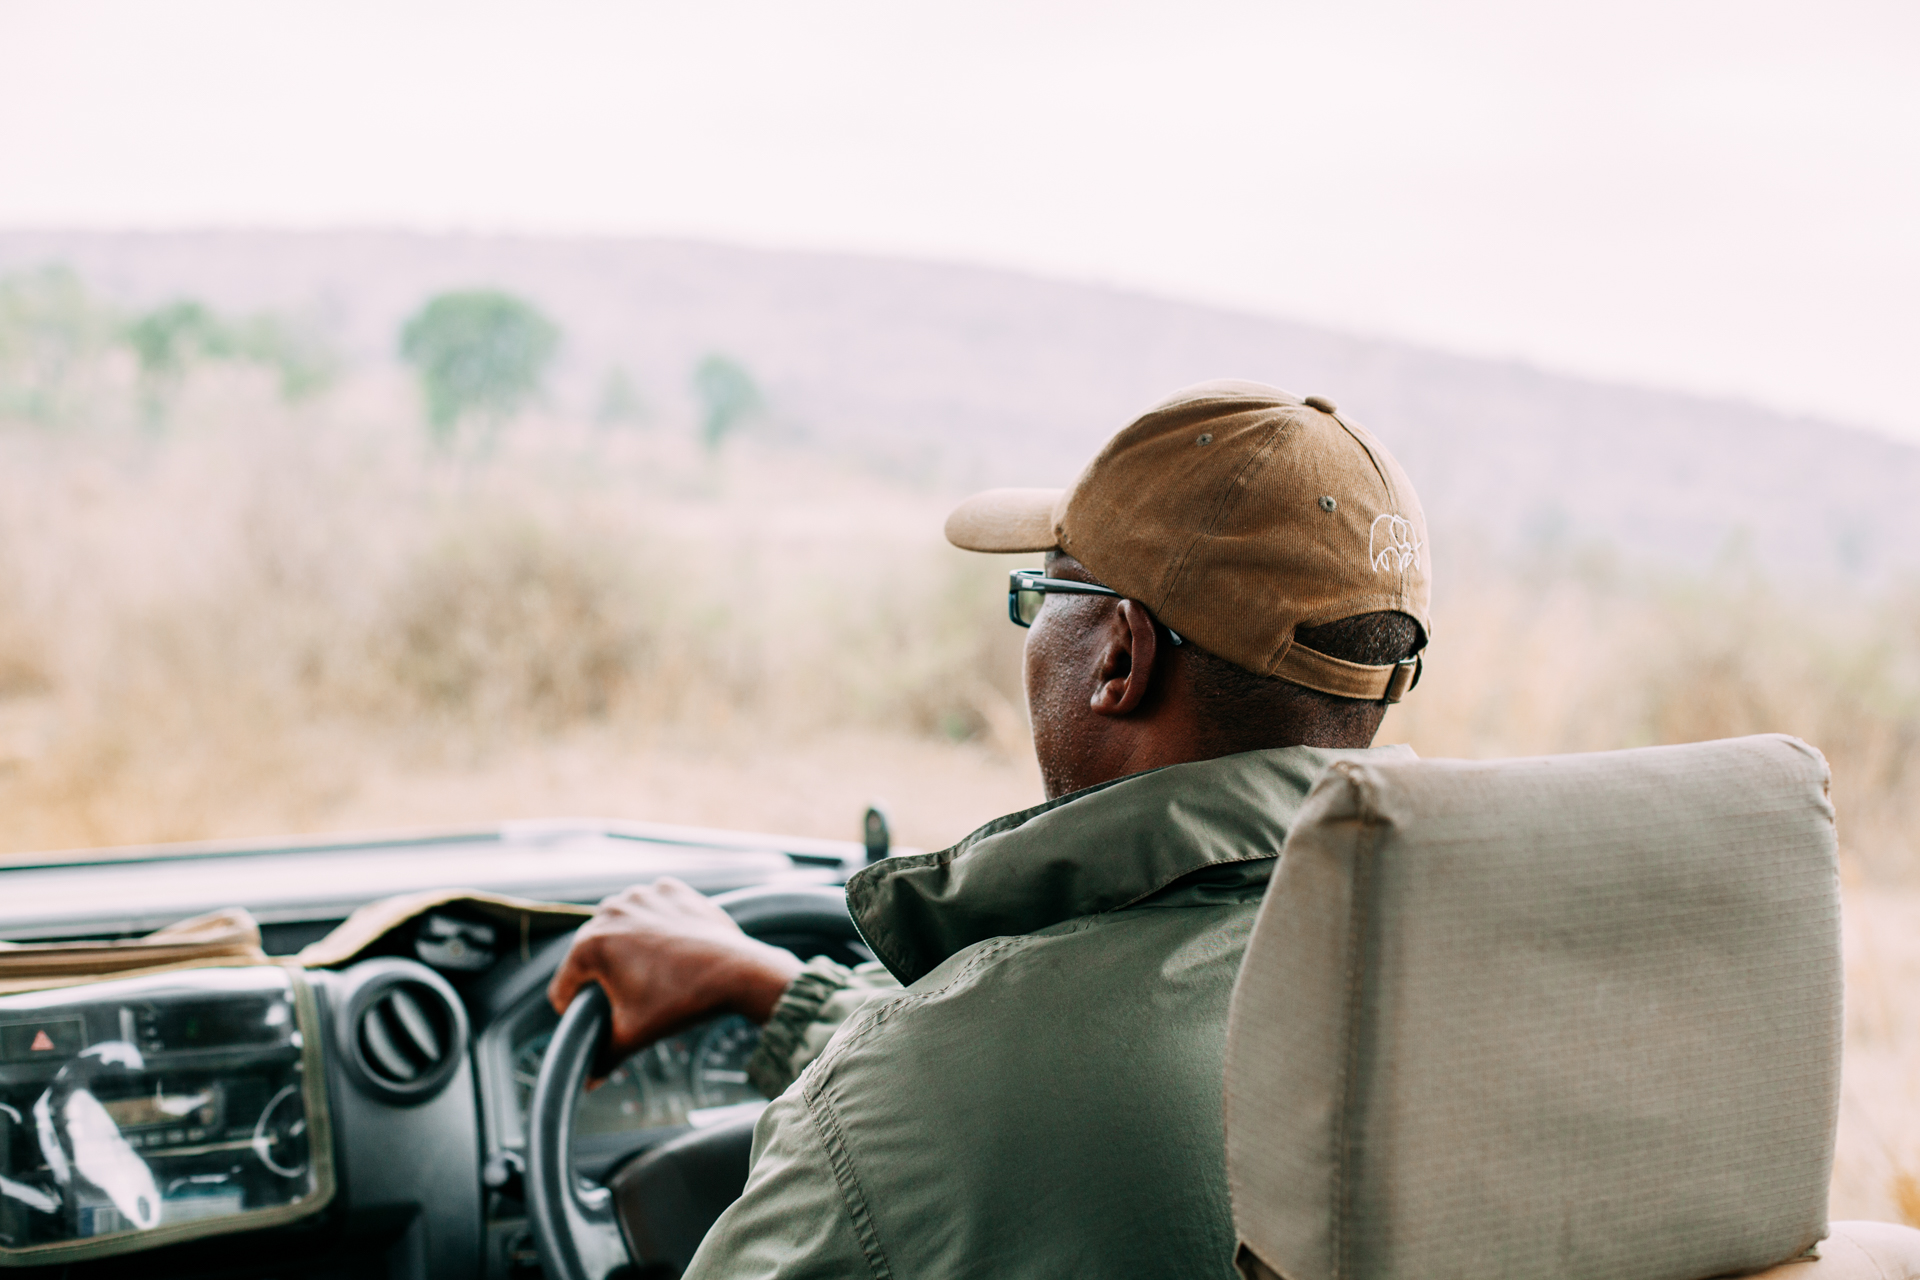 OUR INCREDIBLE GUIDES: I can only imagine how magical it must be to spend every day as a guide in the Welgevonden Private Game Reserve. It's truly inspiring to hear the guides explain the smaller details of the land and the wildlife.